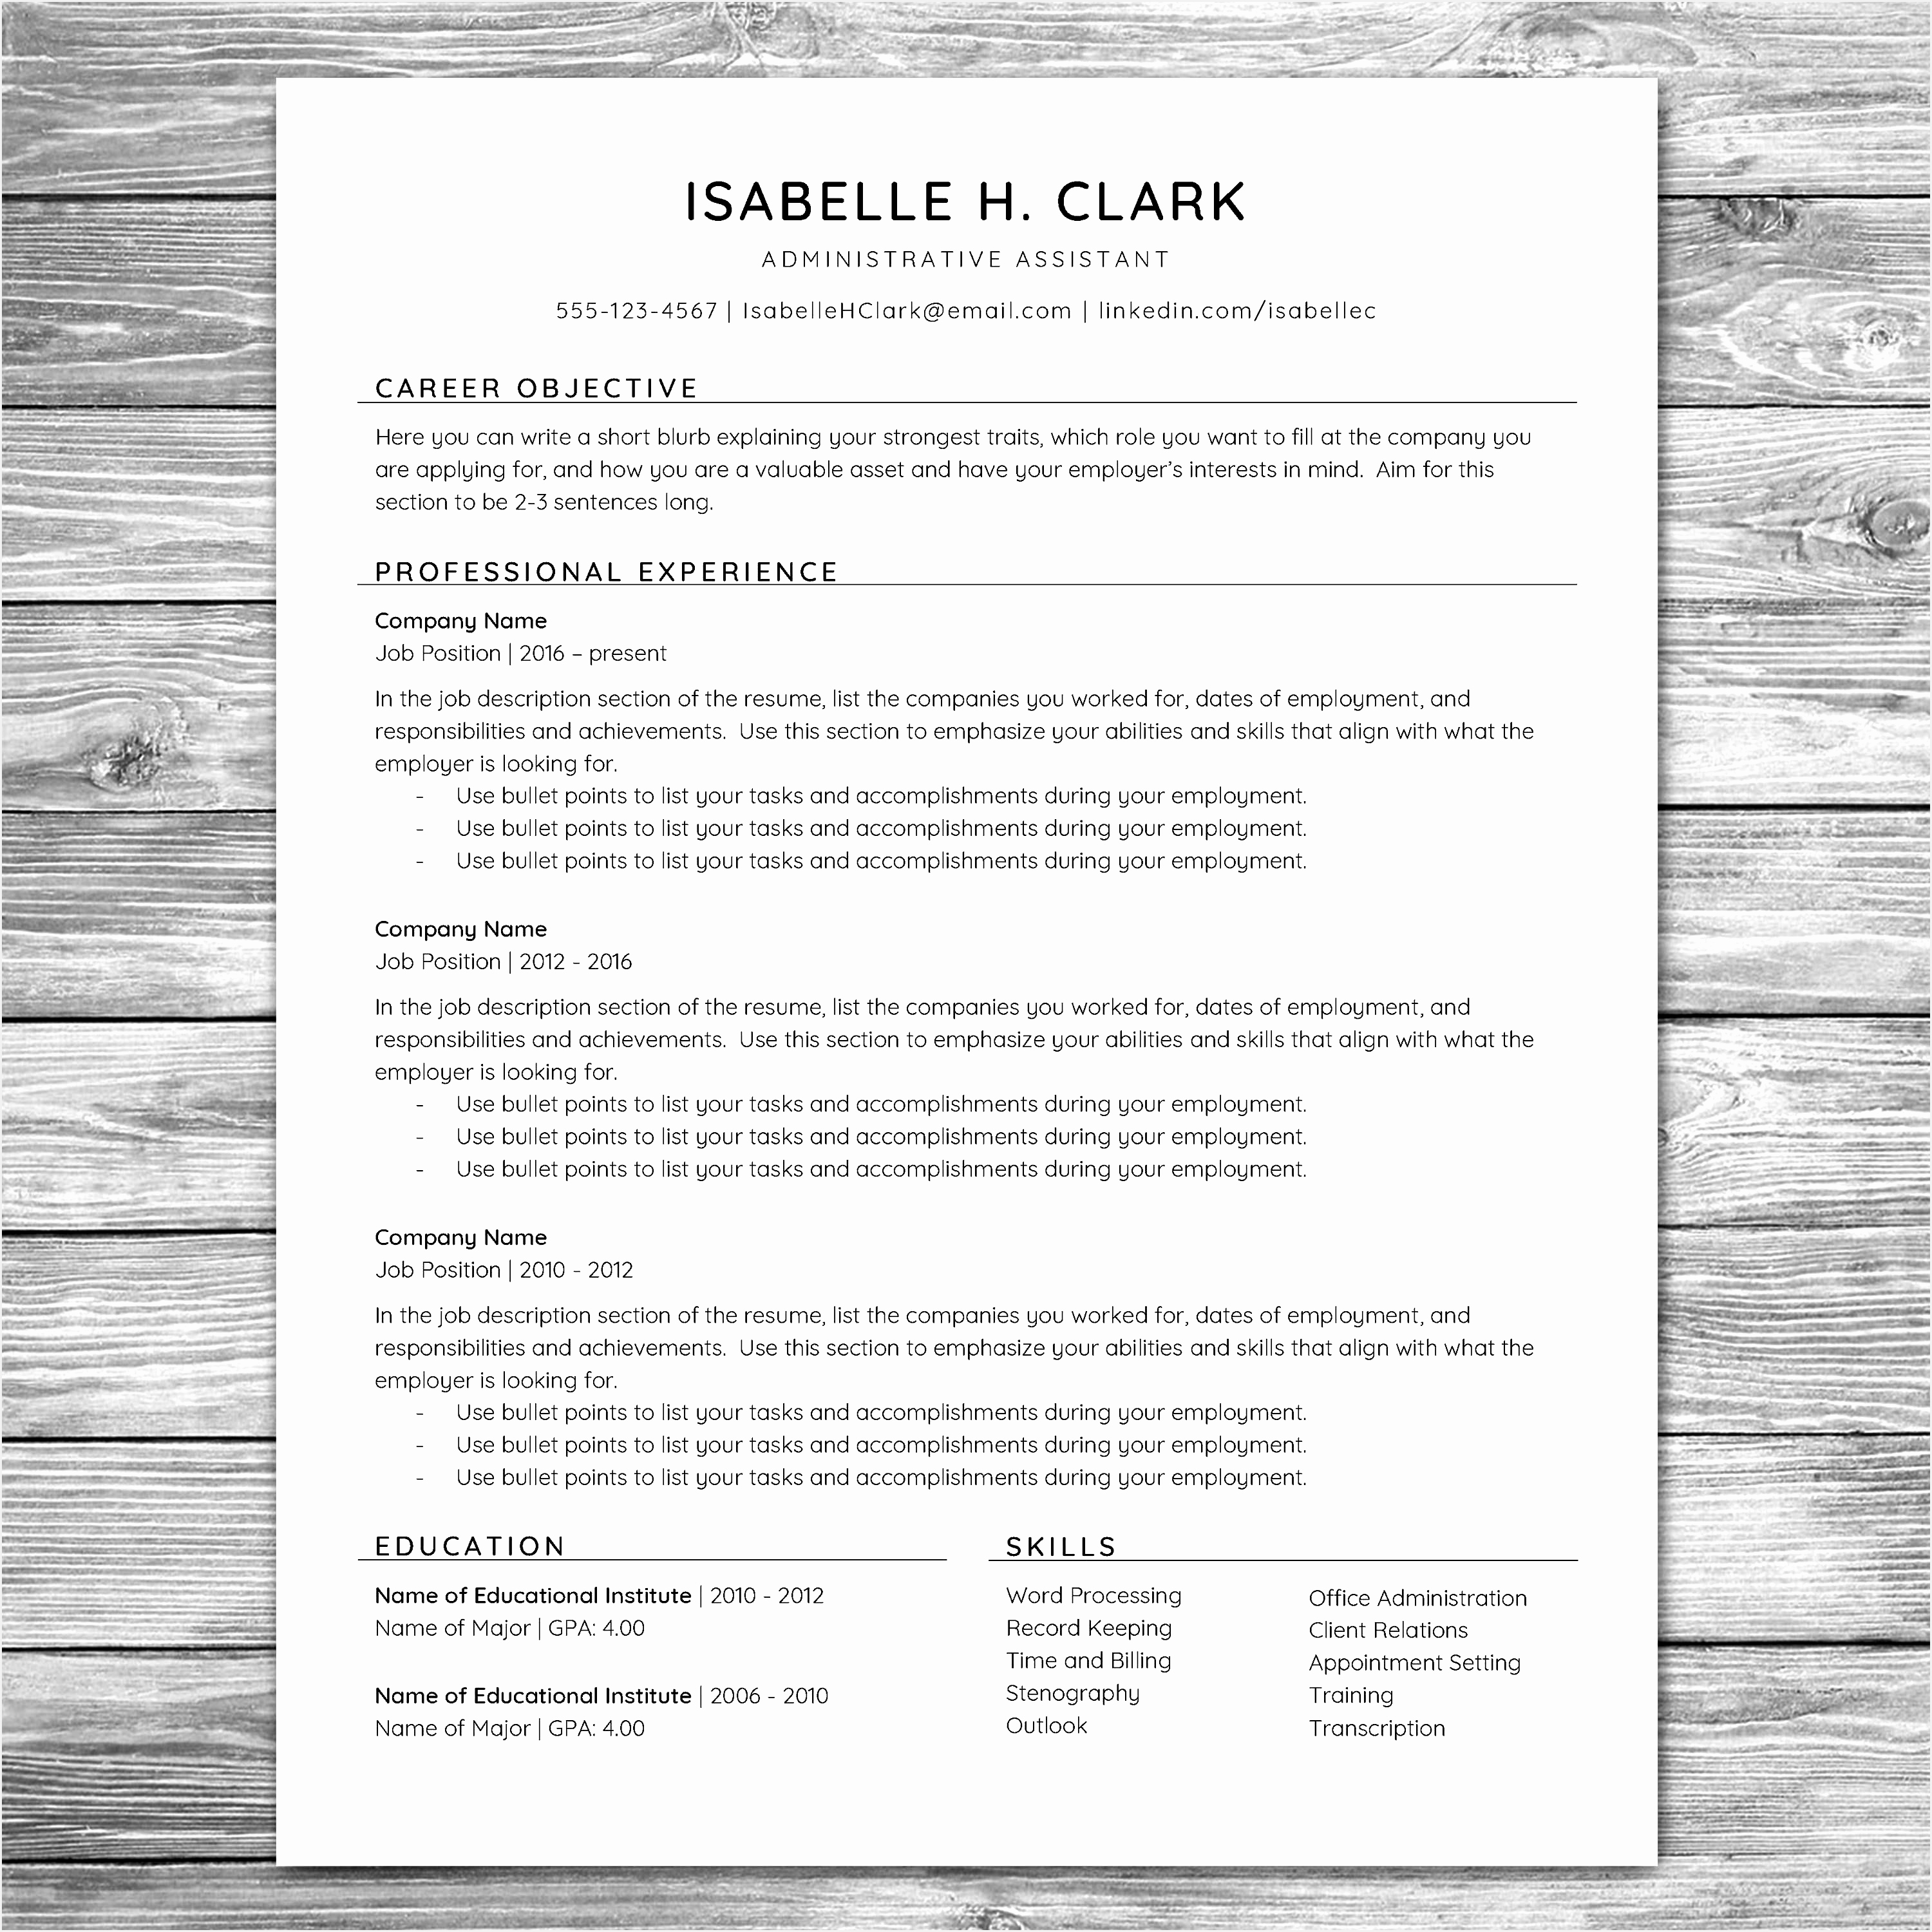 Professional Minimalist Resume Template CV Template Printable Resume Instant Download Cover Letter30003000